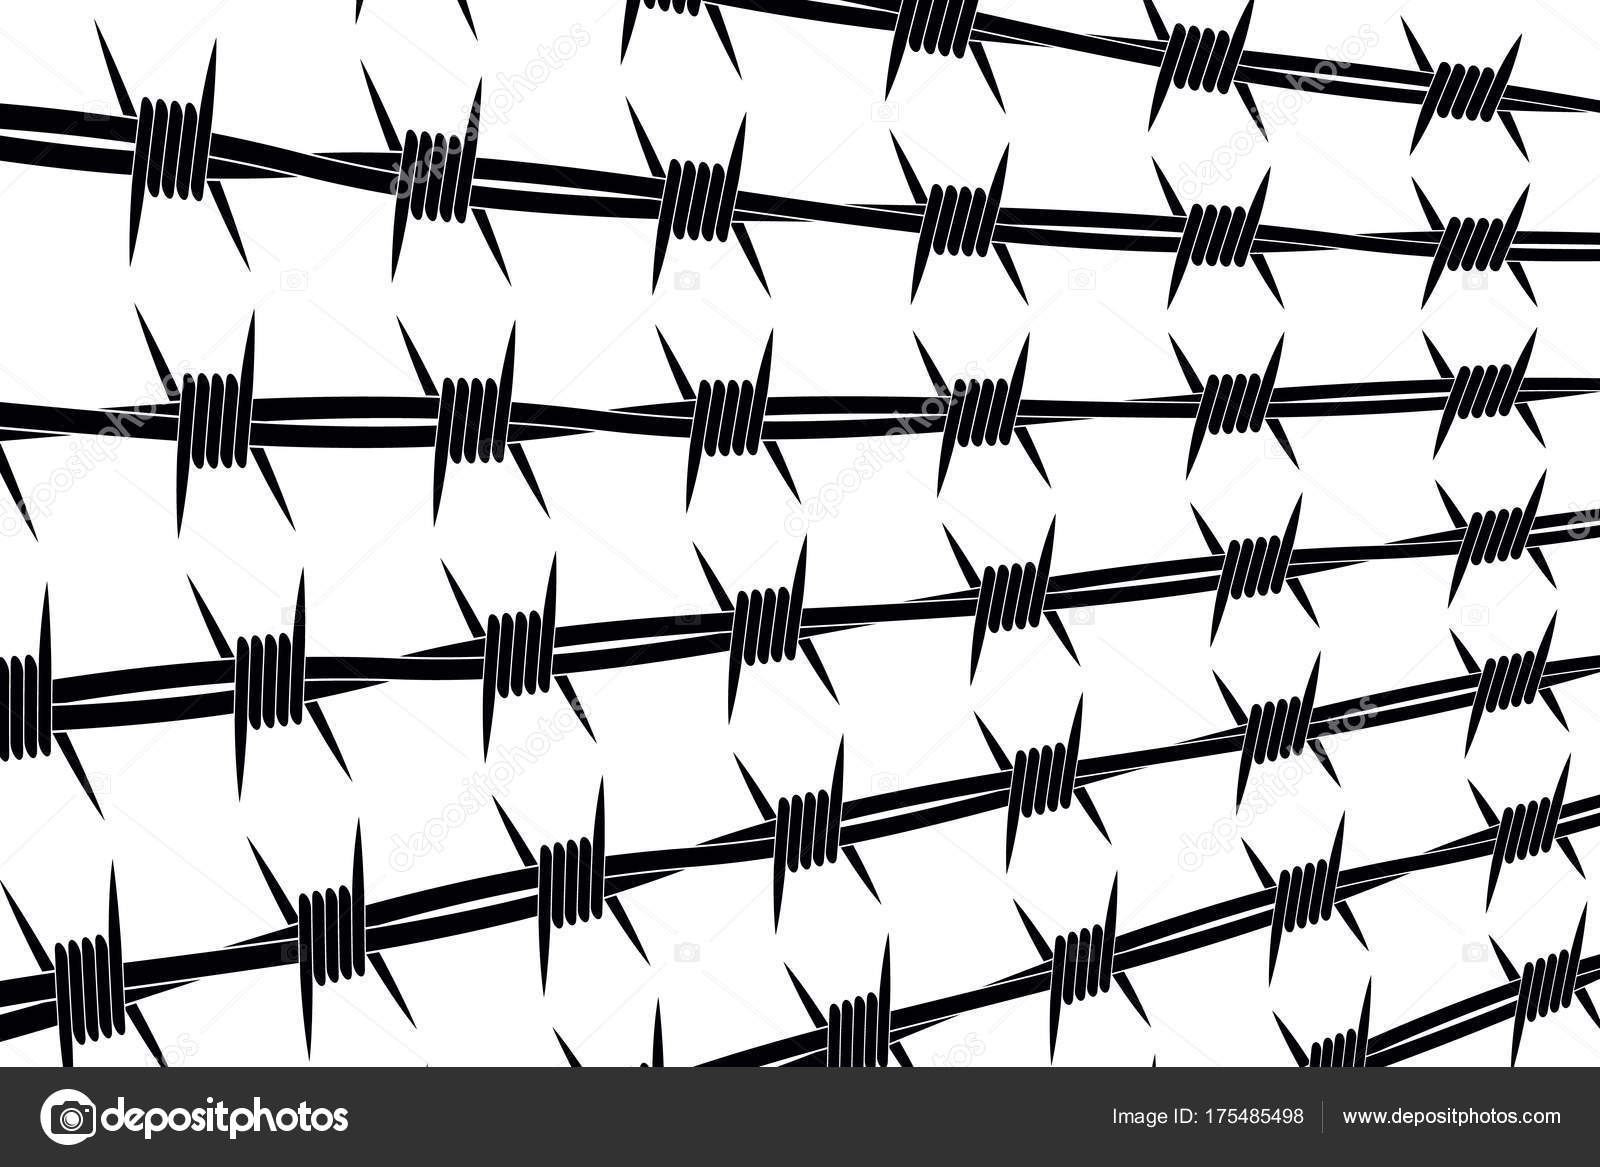 Vector Silhouette of Barbed Wire Lines. Types and Different Vari ...